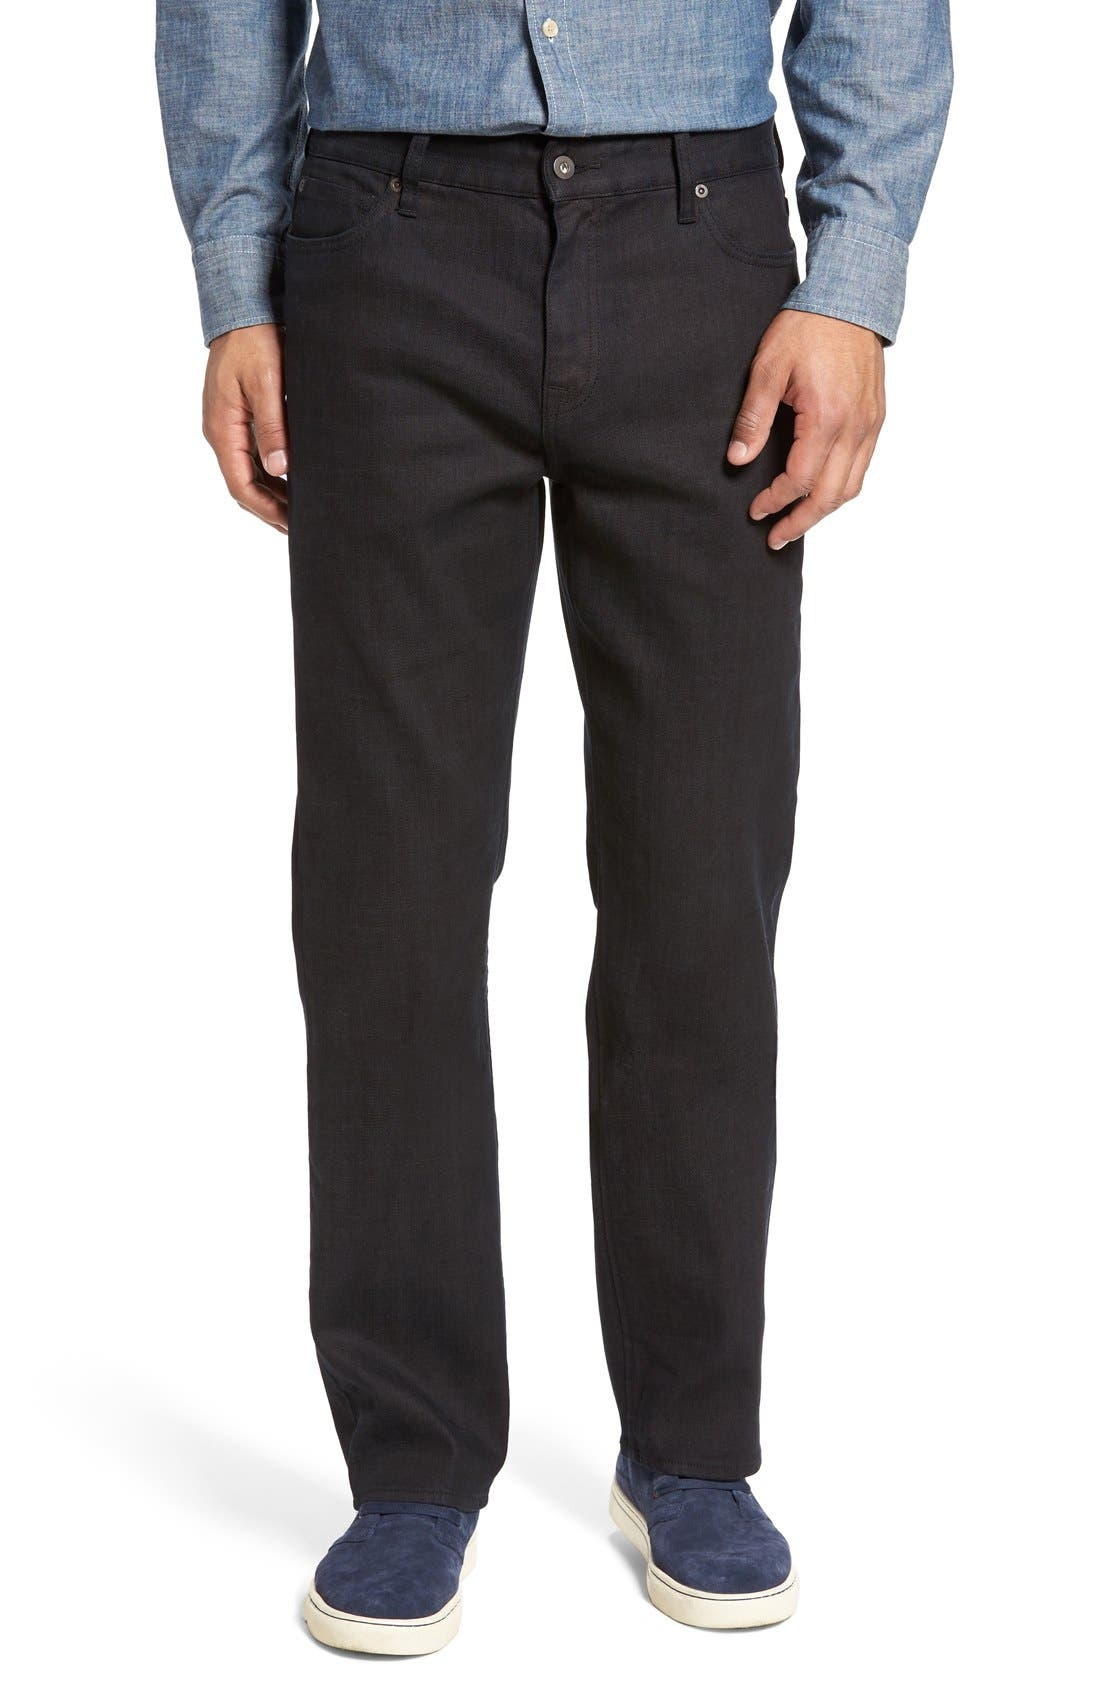 Greenwood Relaxed Fit Jeans,                         Main,                         color,